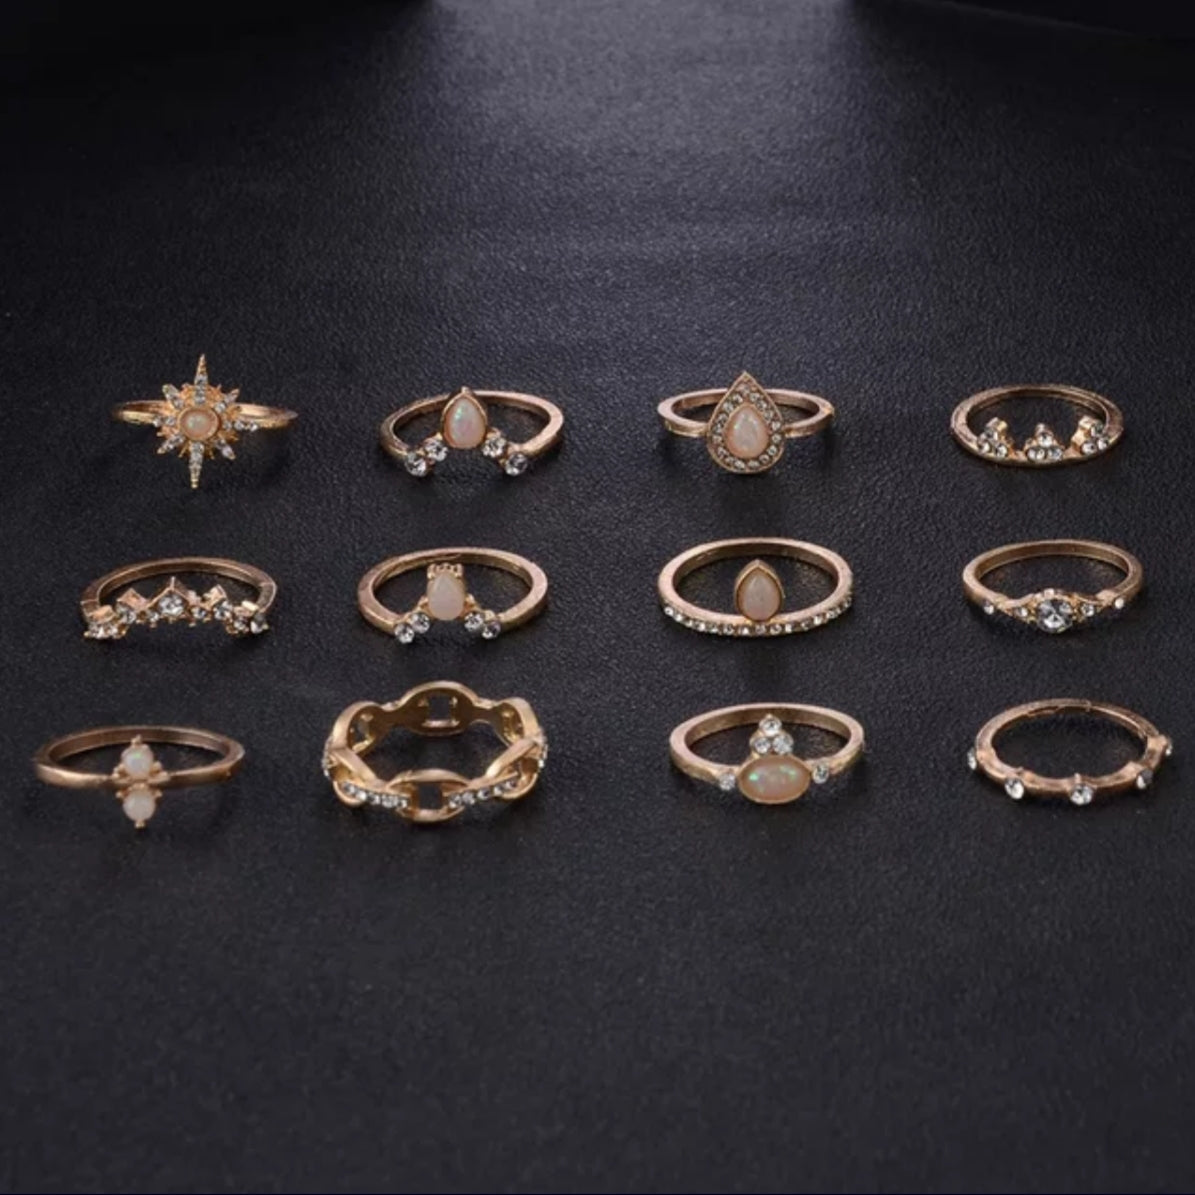 Ring set, Fashion gold ring set, different sizable rings